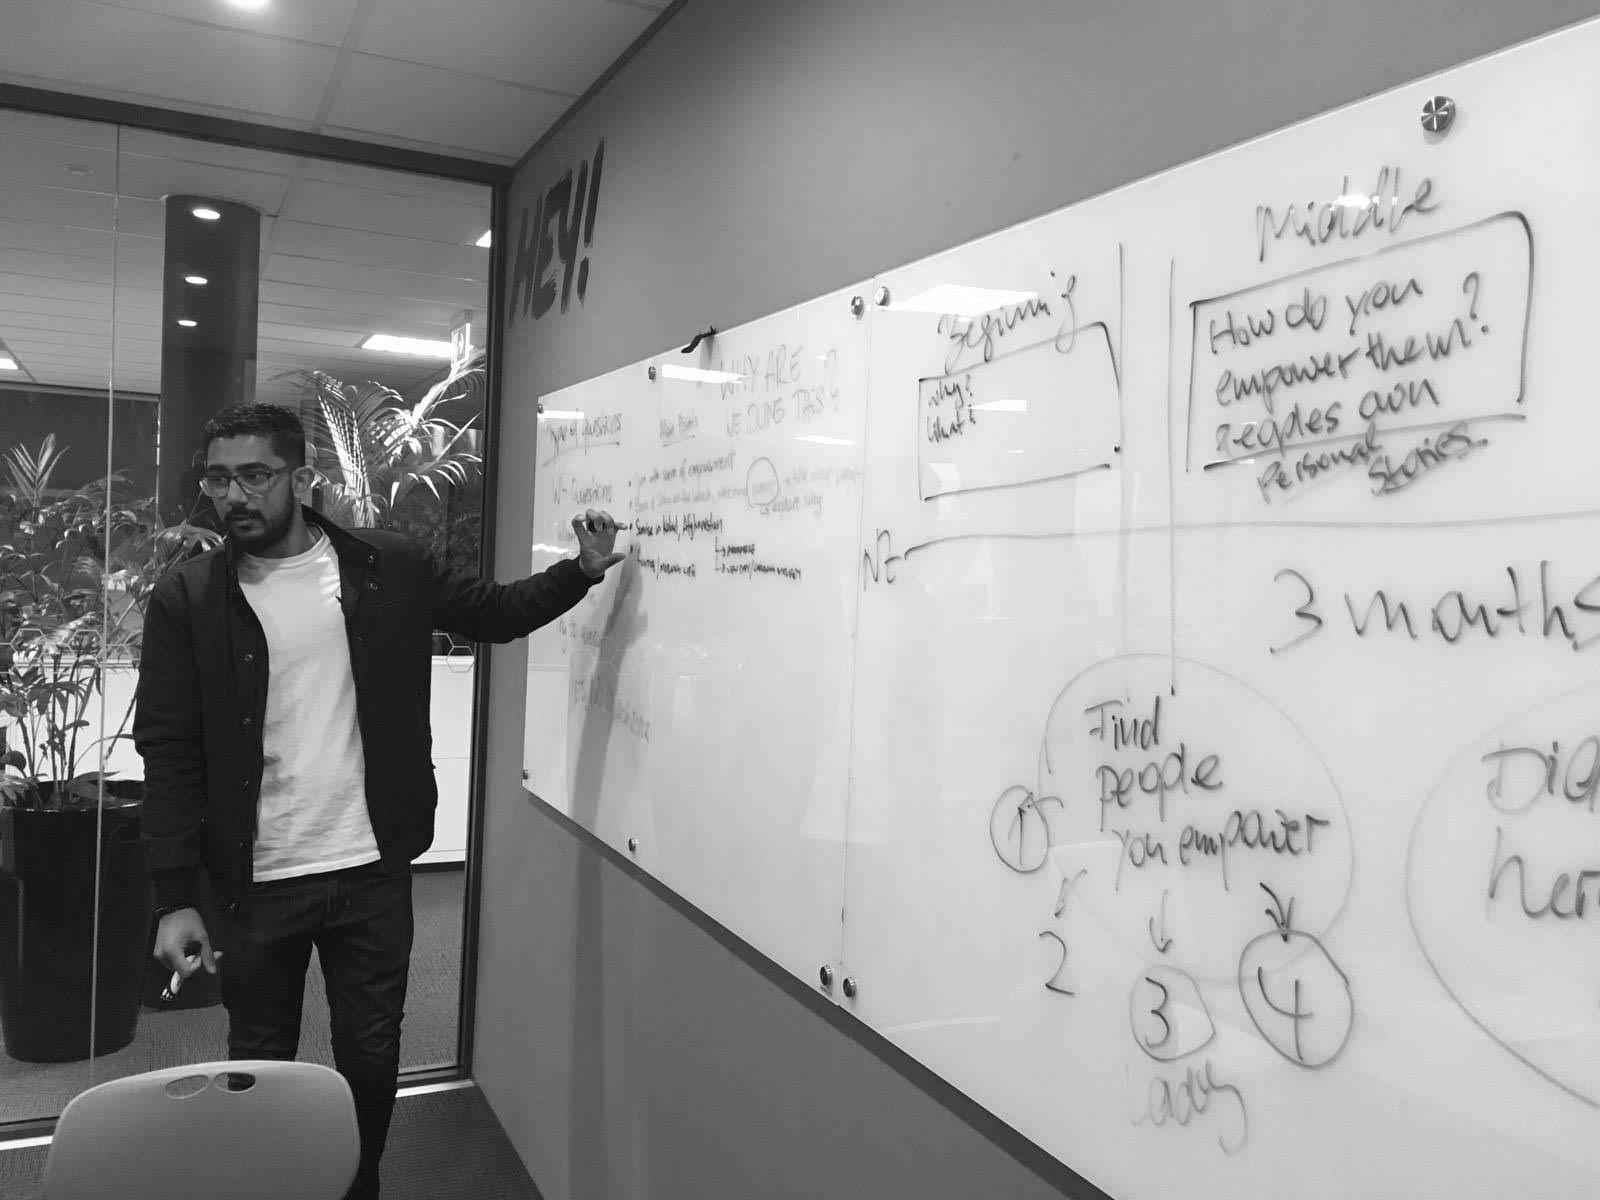 kaushik white board strategy for a marketing client